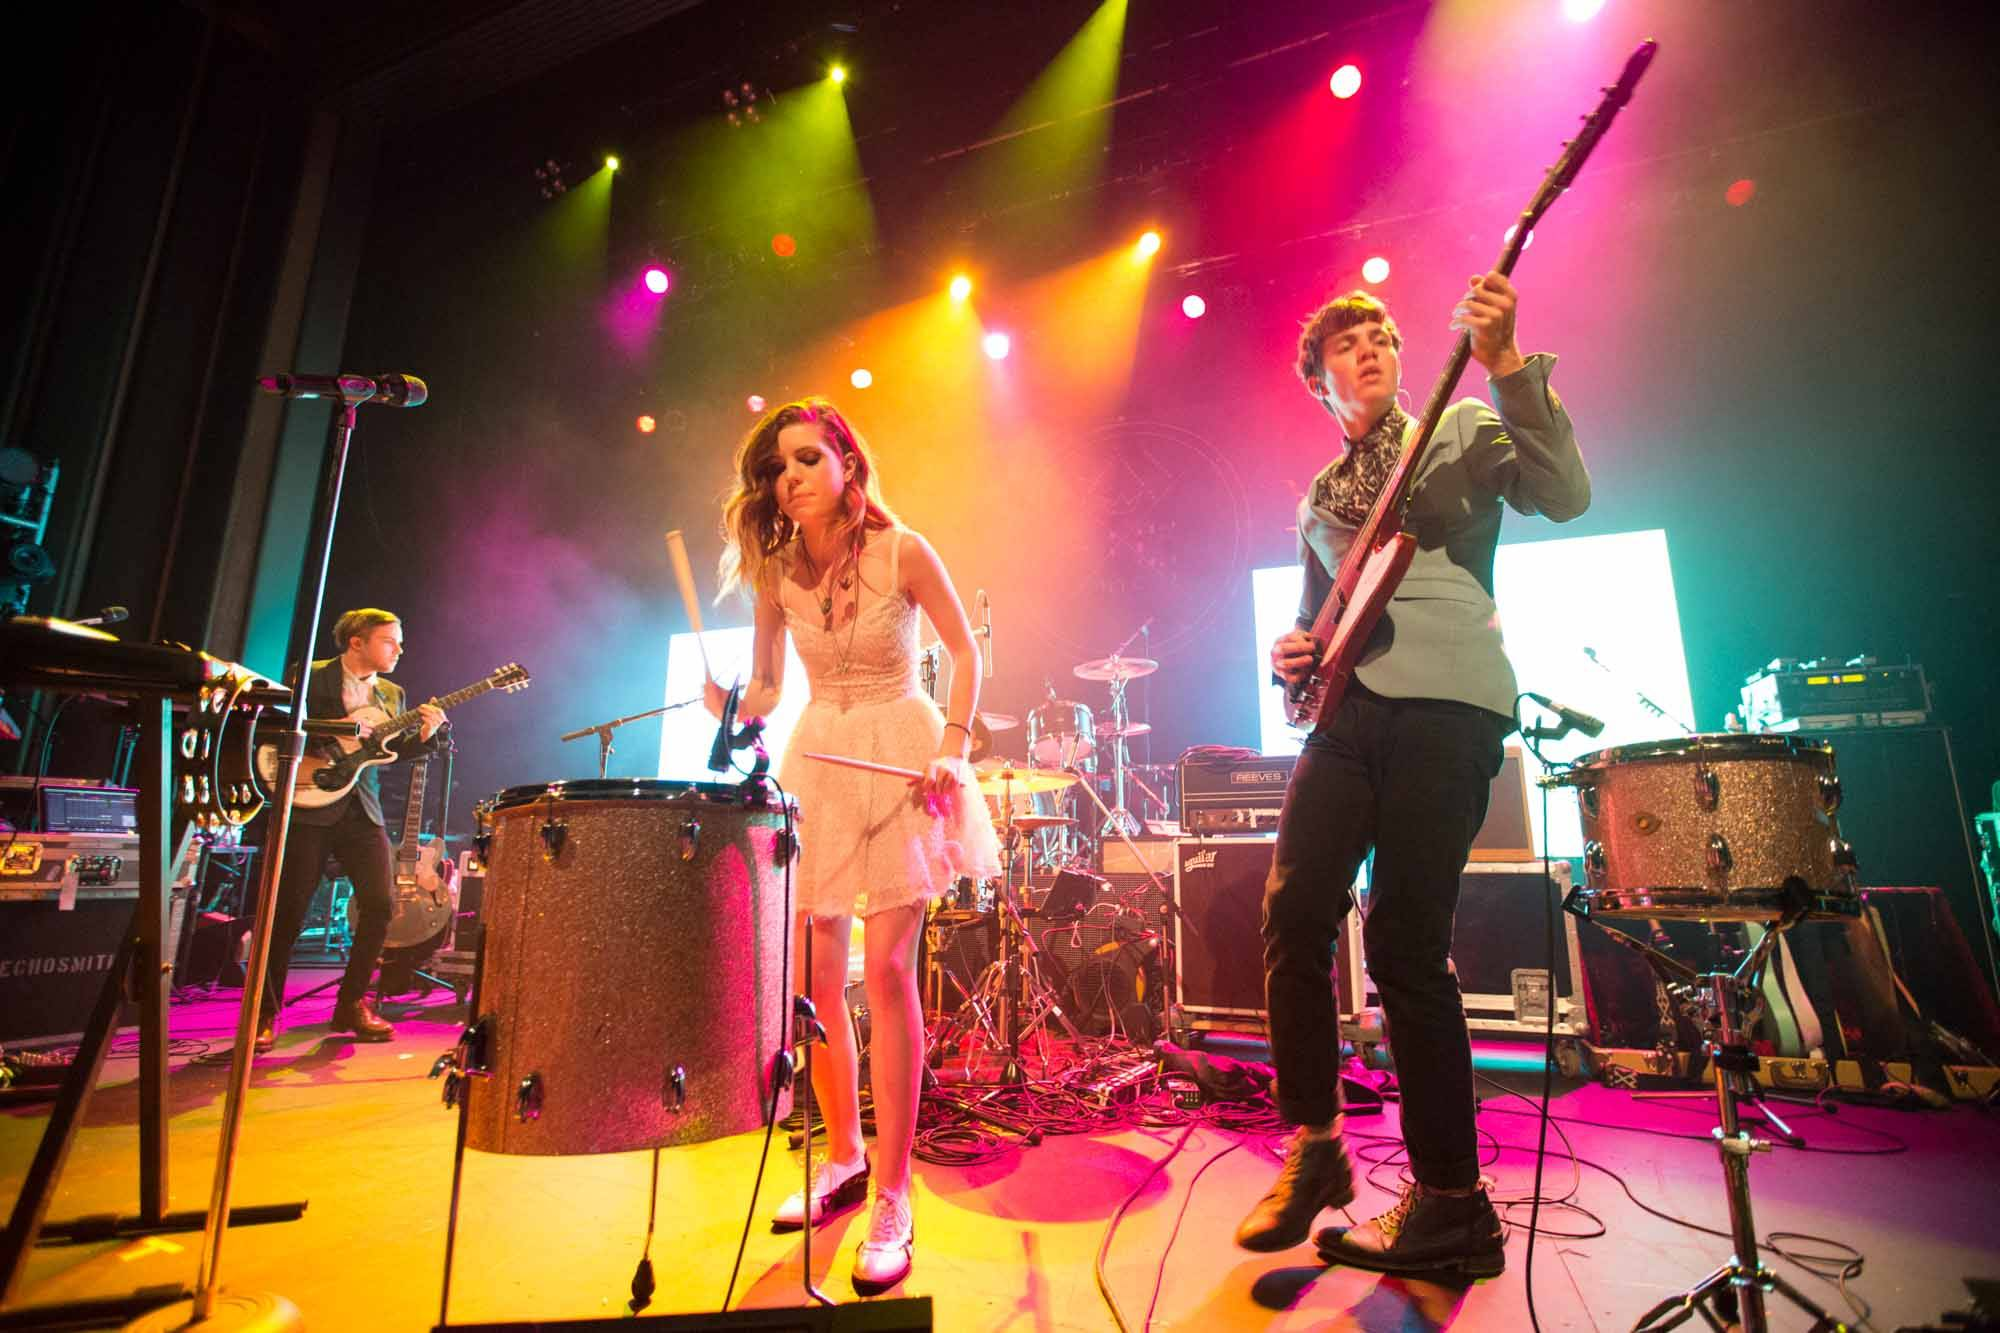 Echosmith at the Vogue Theatre, Vancouver, Oct. 8 2014. Kirk Chantraine photo.